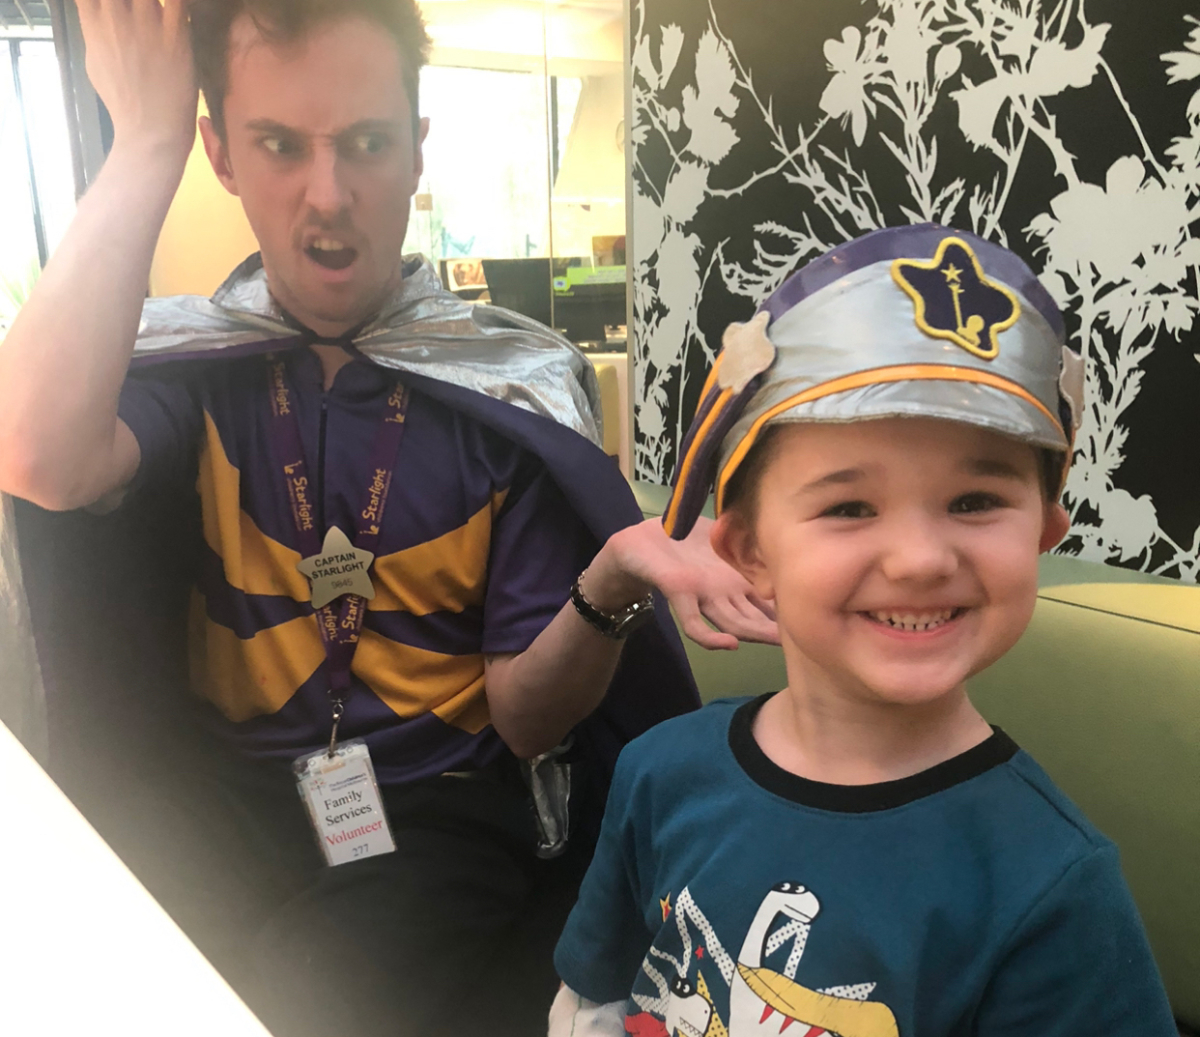 Chayse with Captain Starlight in the Starlight Express Room